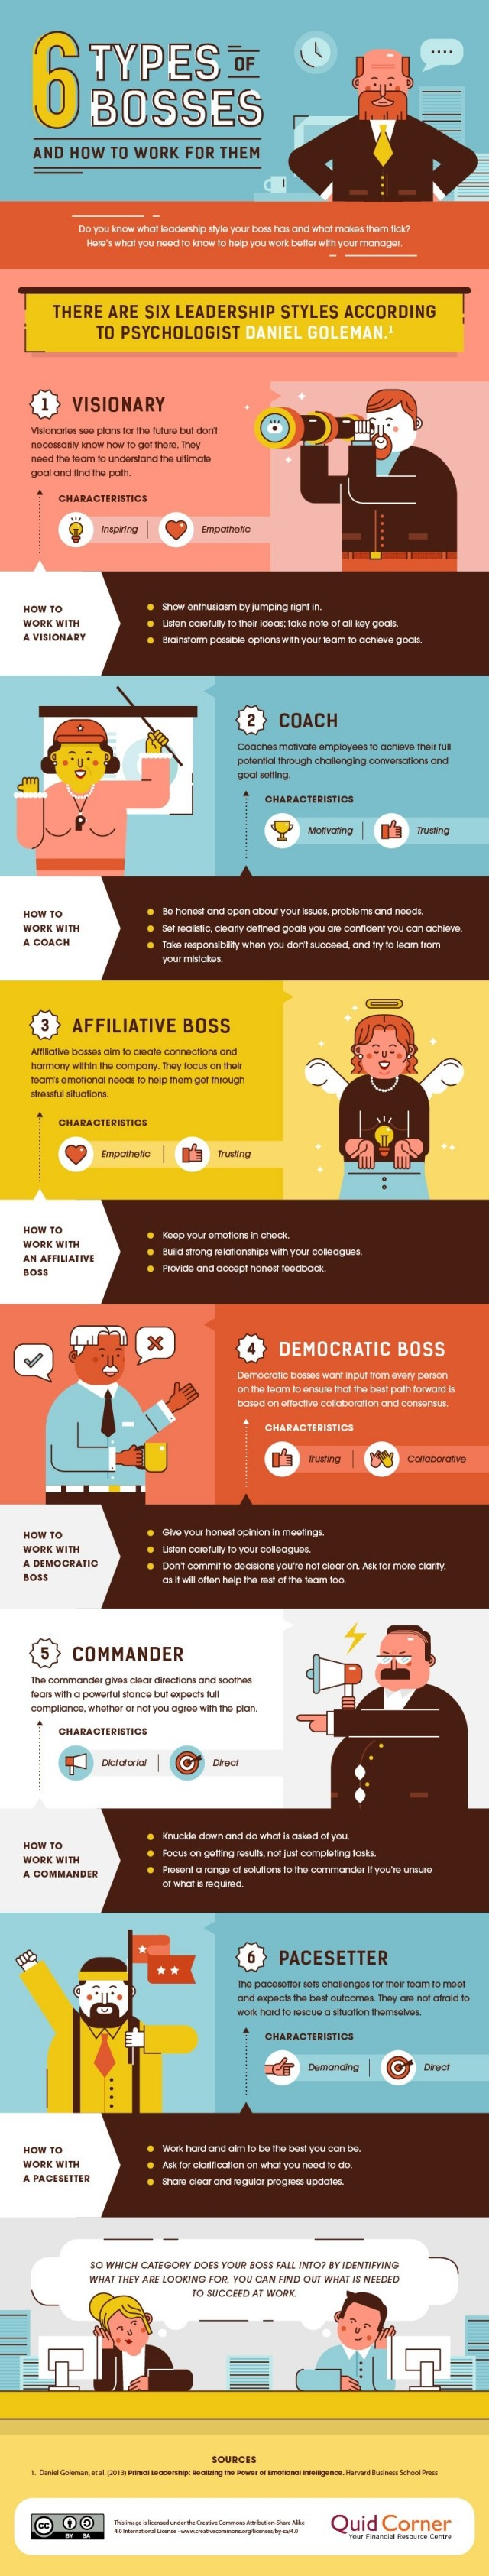 6 Types of Bosses & How To Work With Them's infographic